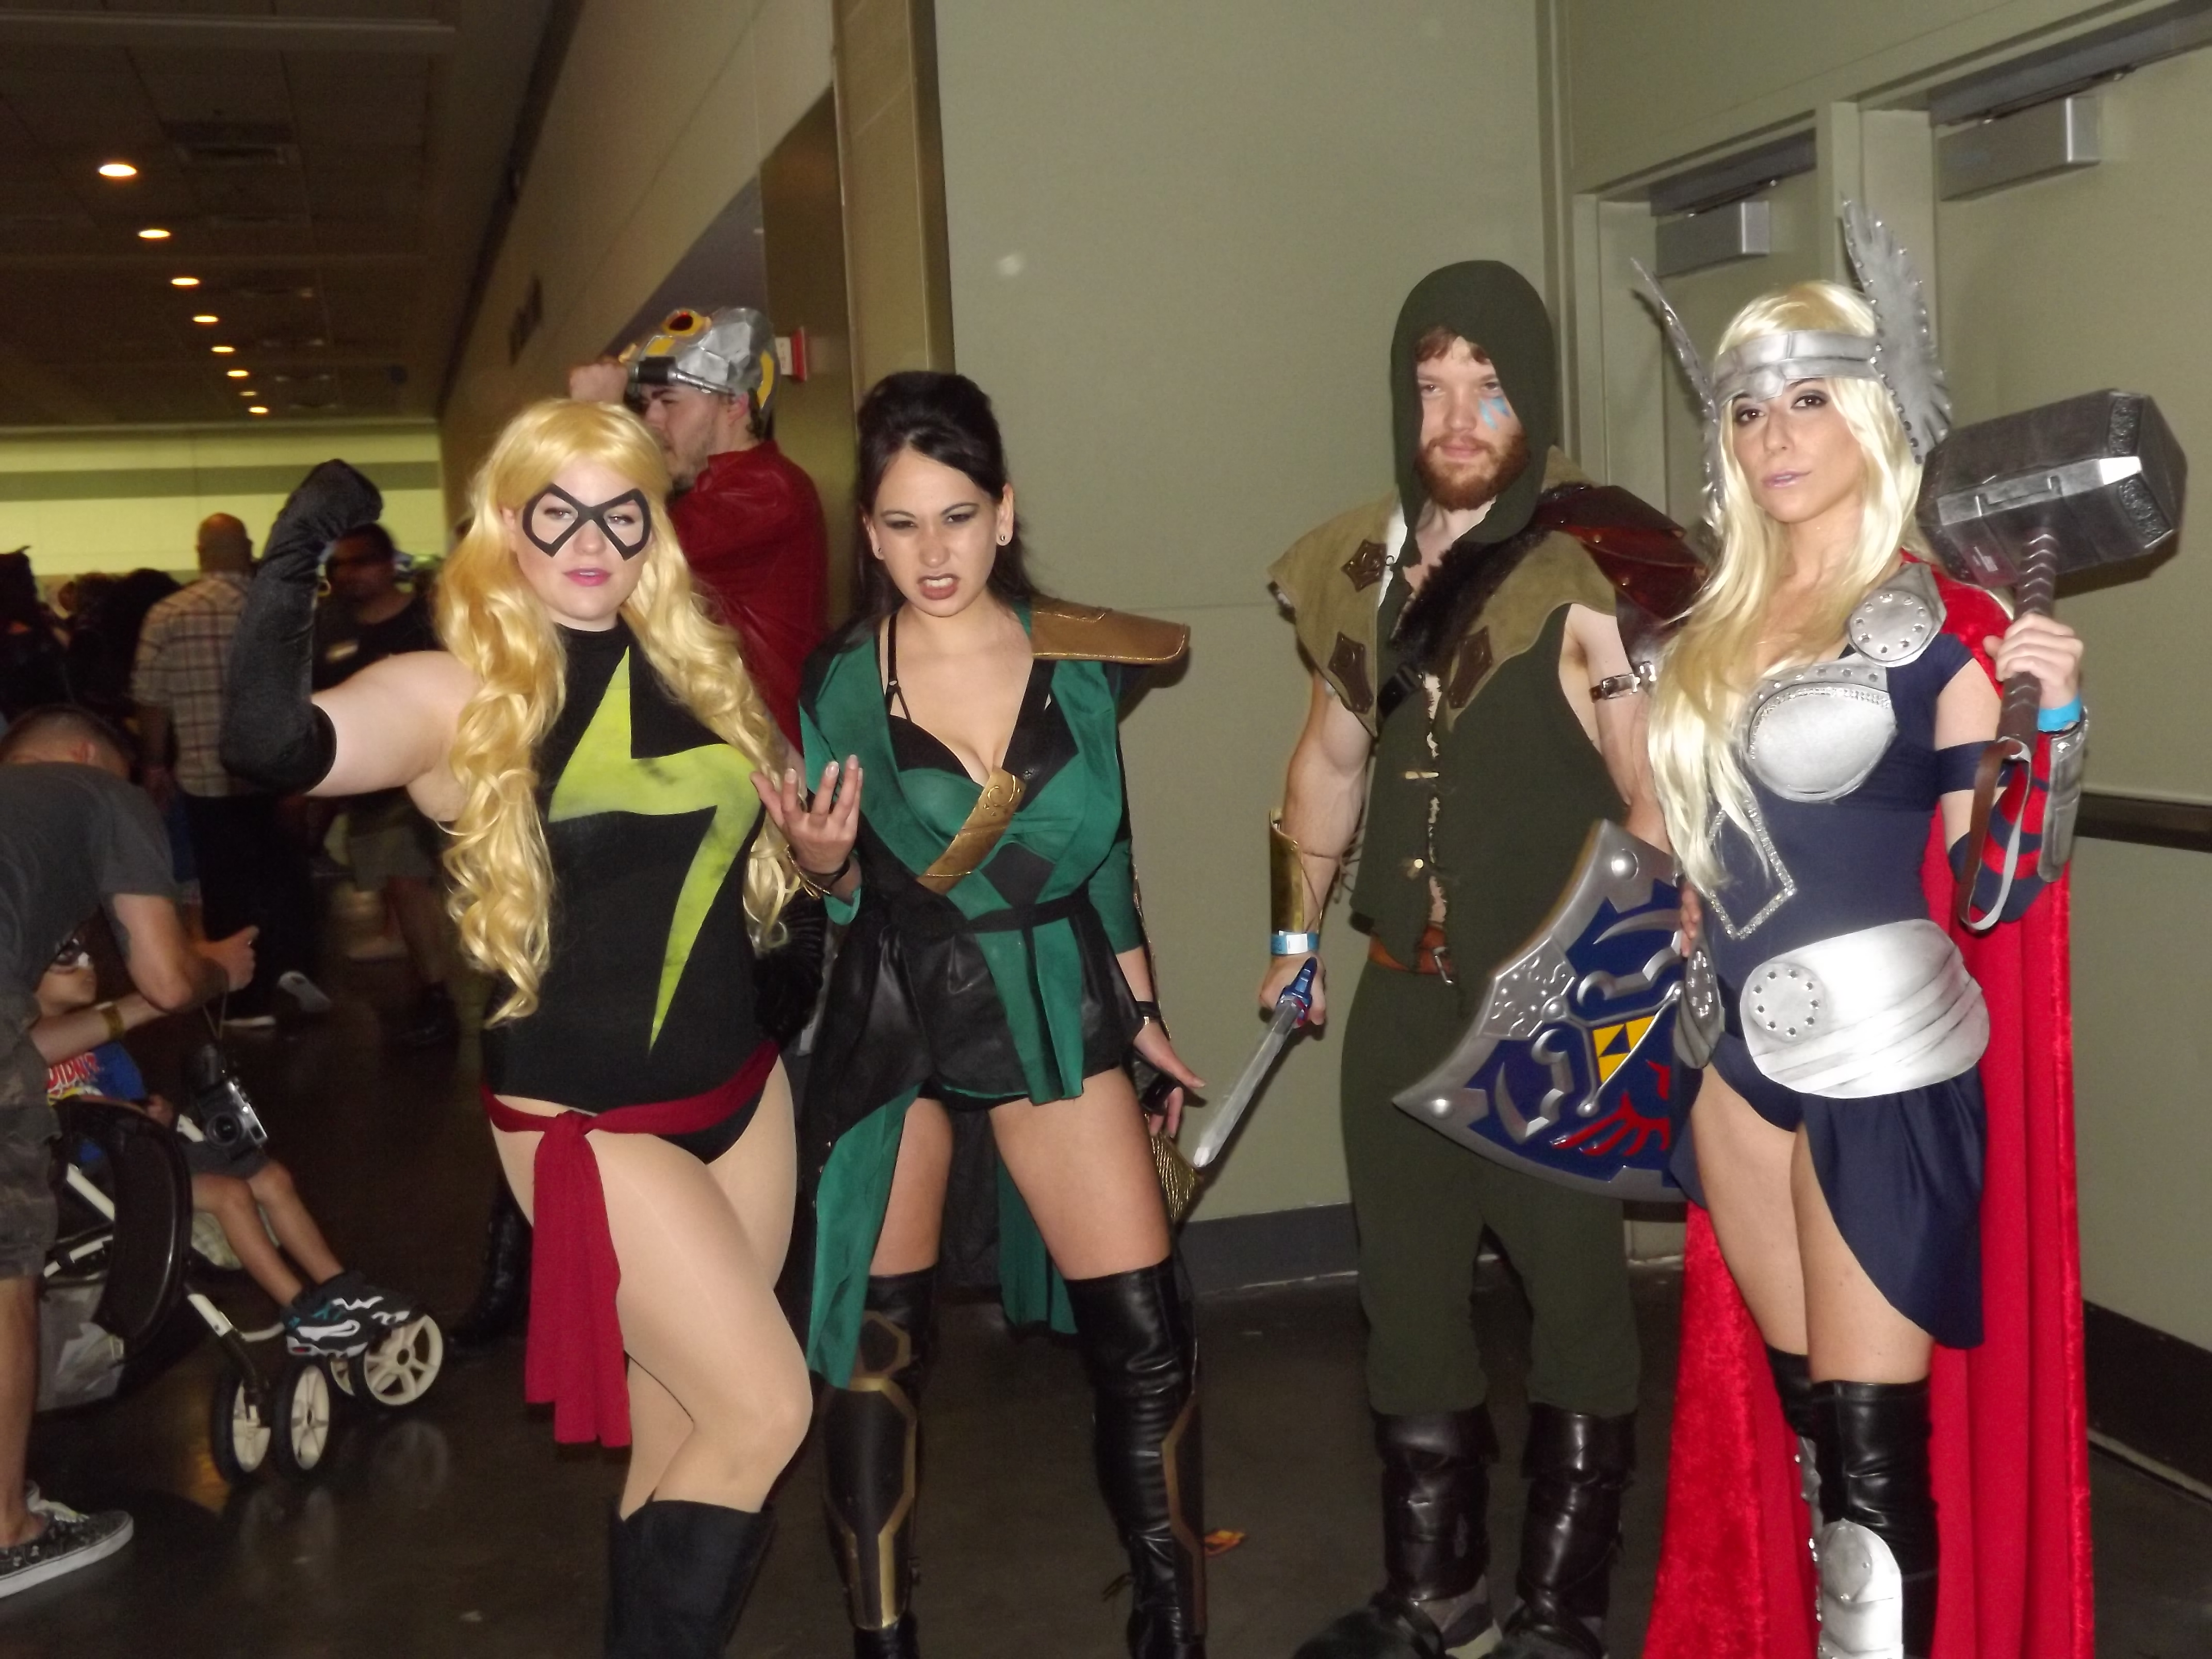 Ms. Marvel, Cheshire, Green Arrow and Thor